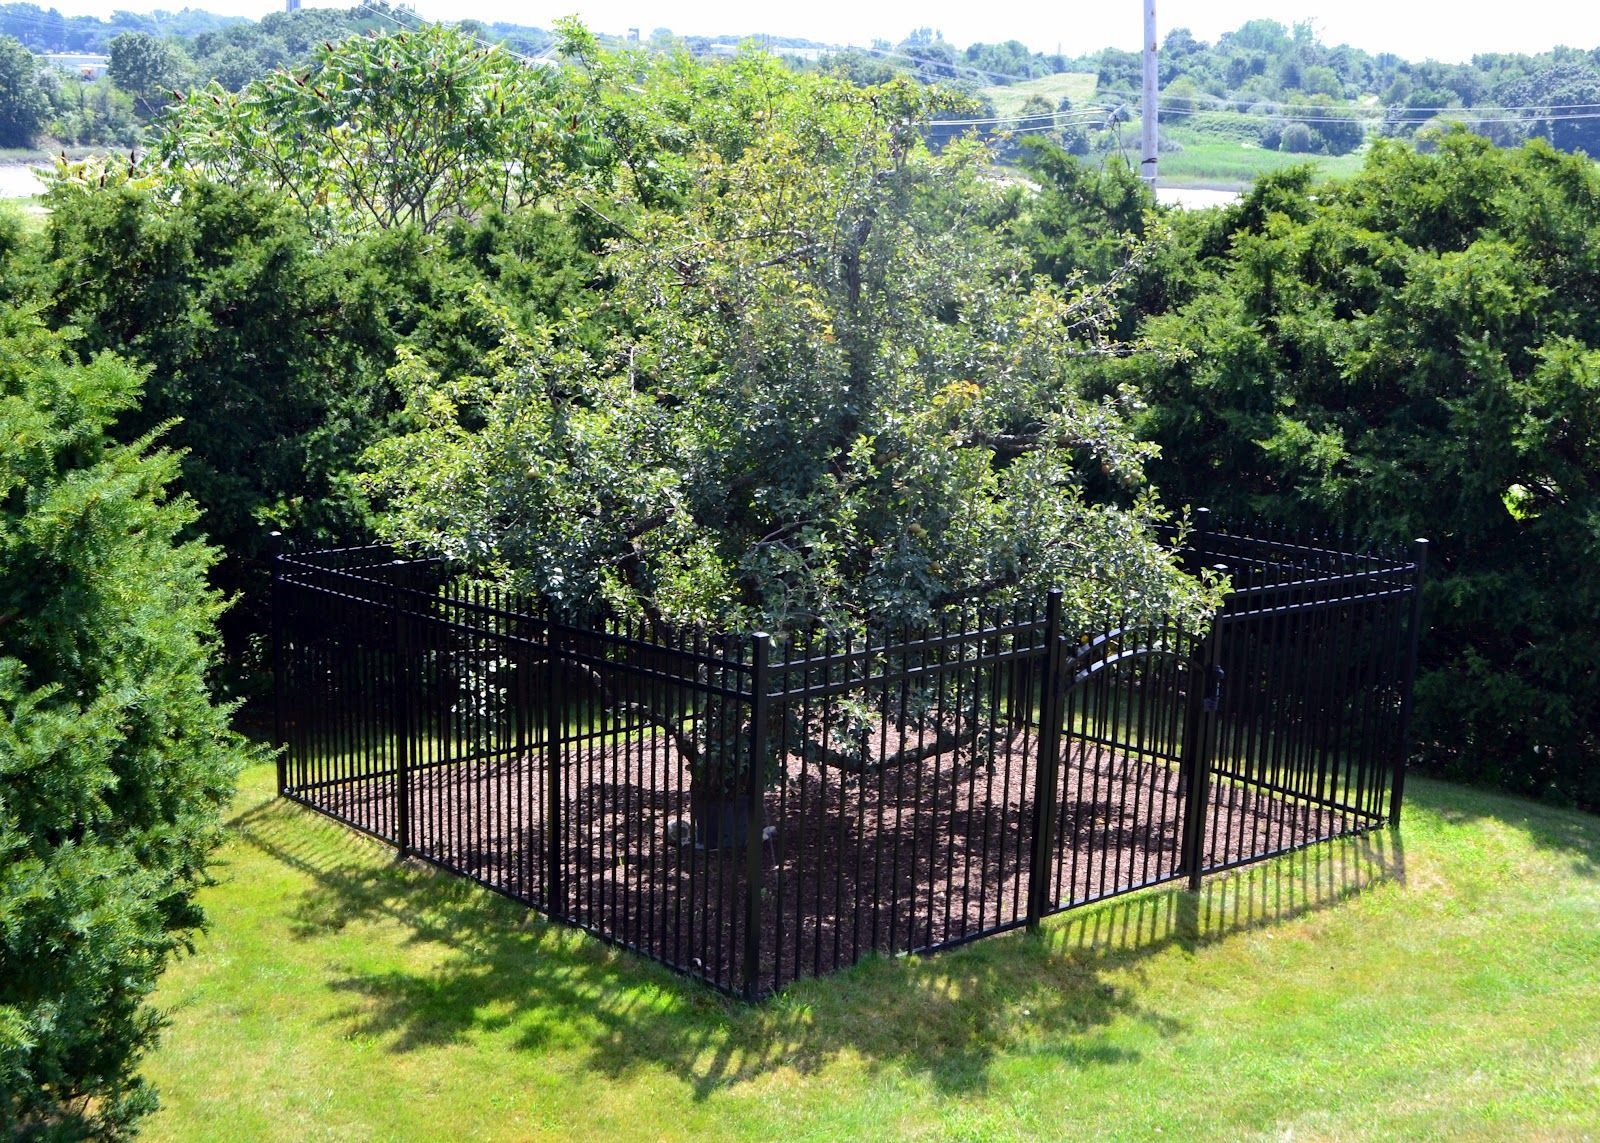 One of the First US Fruit Trees Planted by European Settlers Is Still Alive and Well at Age 383+